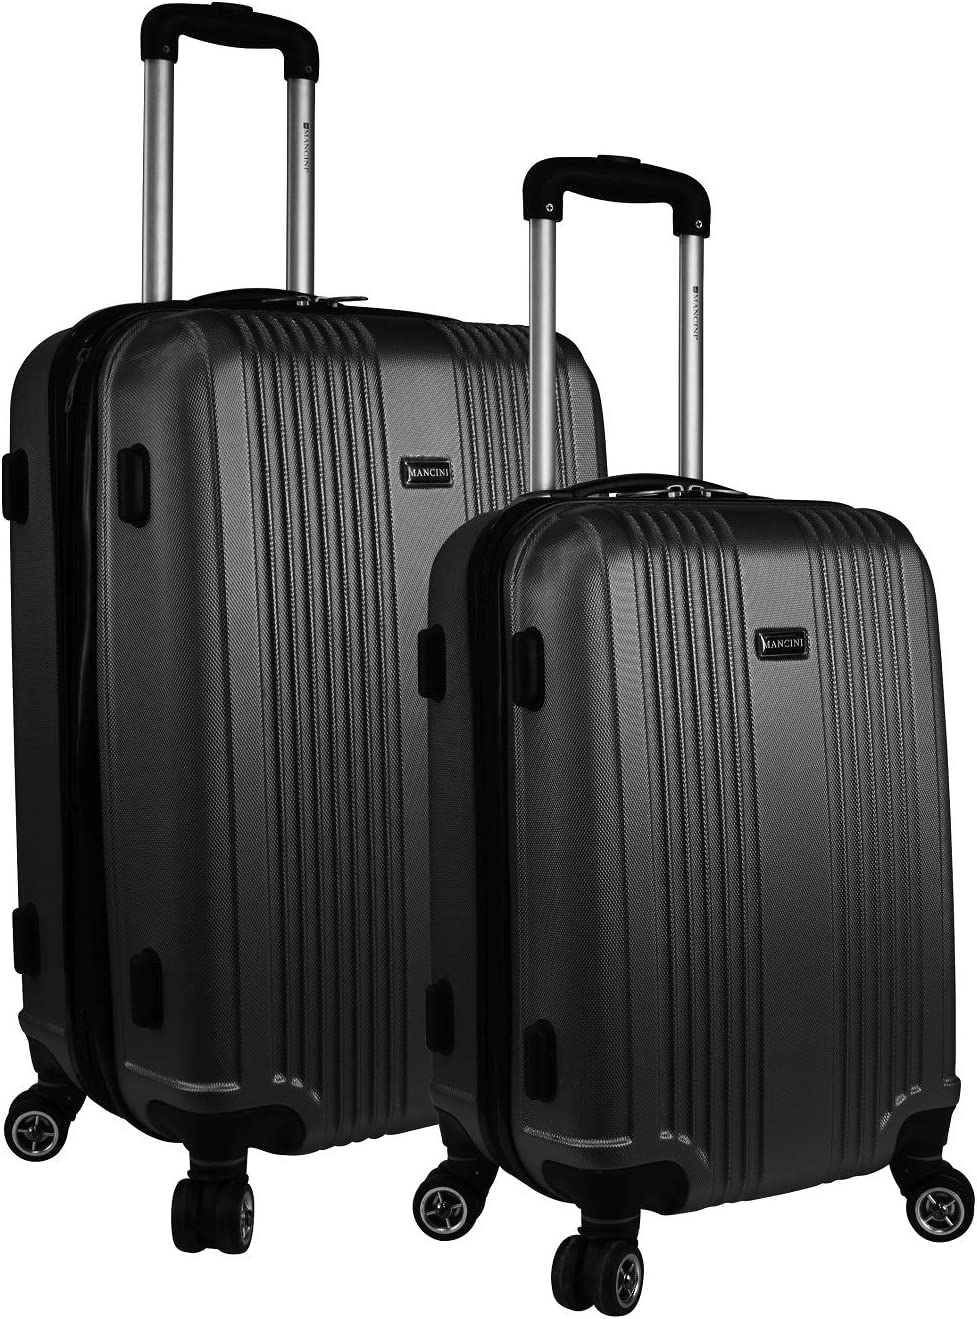 Mancini Santa Barbara Expandable Spinner 2 Piece Luggage Set in Black